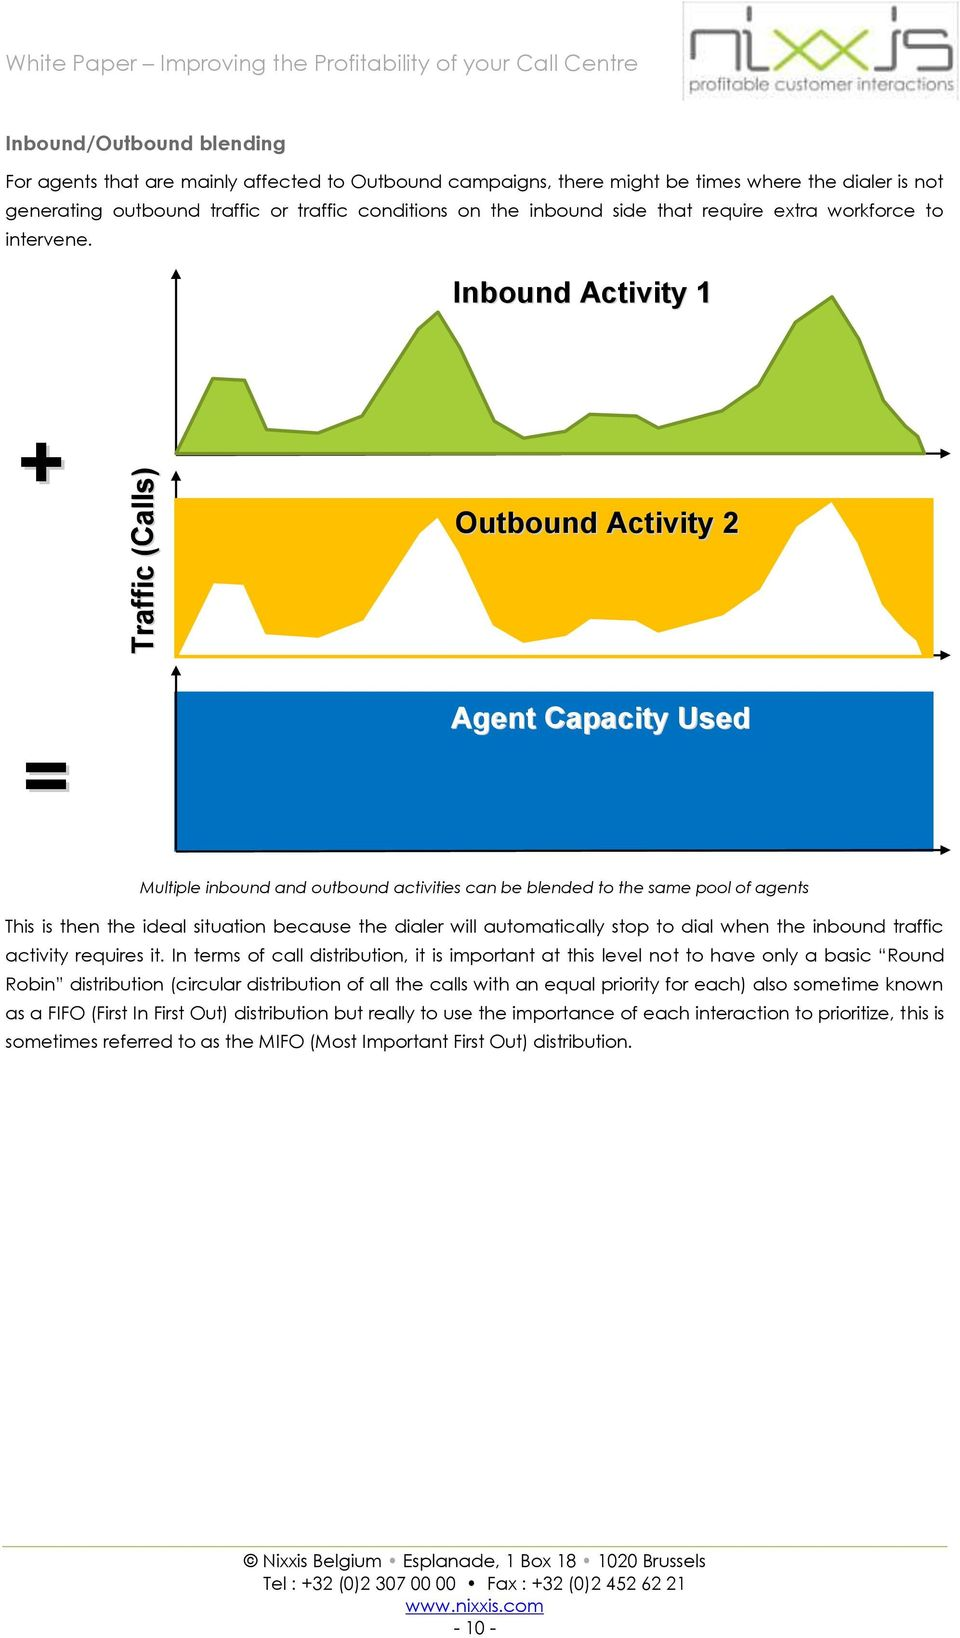 Inbound Activity 1 + Outbound Activity 2 = Agent Capacity Used Multiple inbound and outbound activities can be blended to the same pool of agents This is then the ideal situation because the dialer